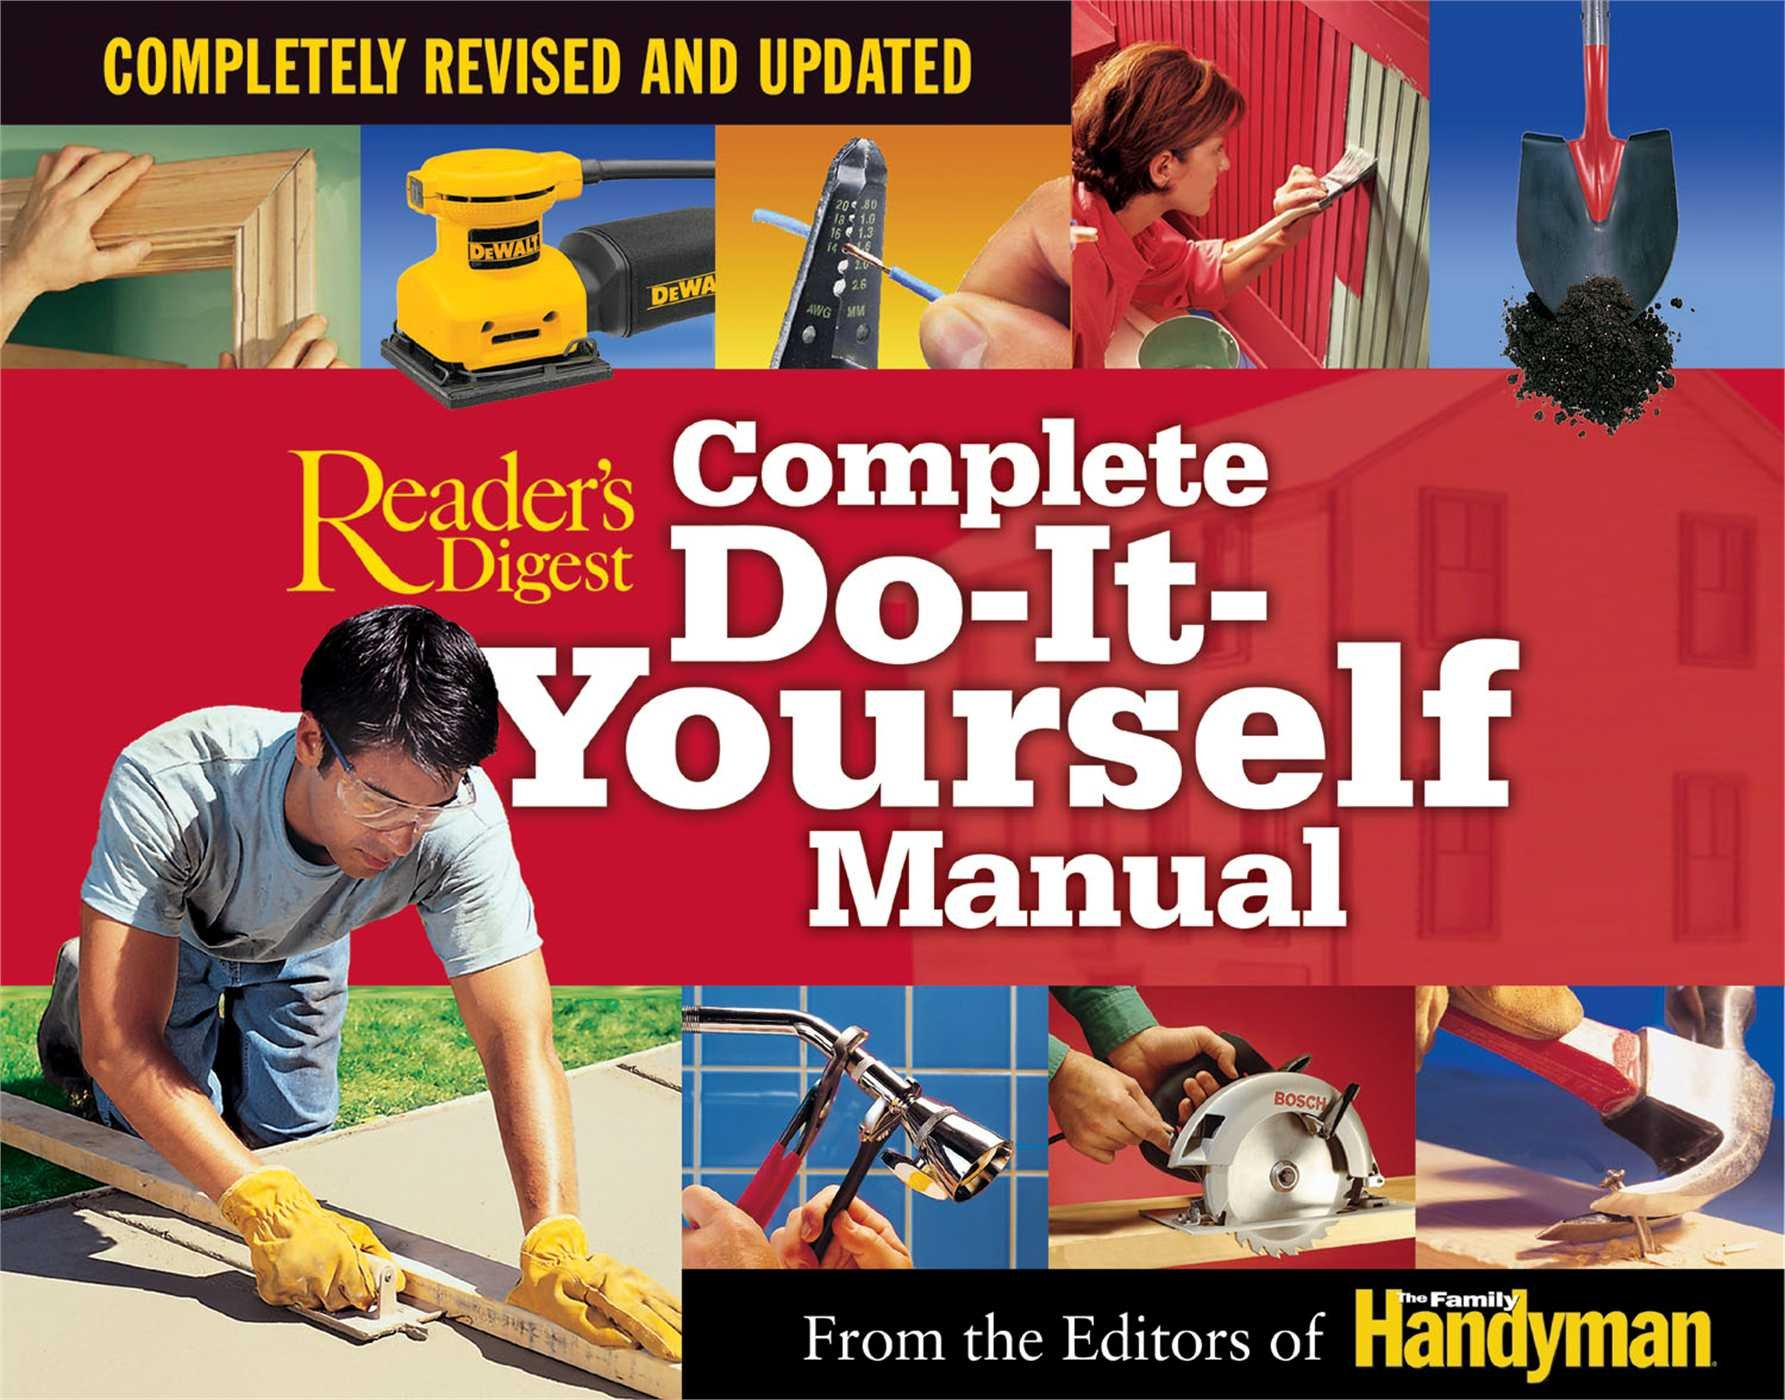 Complete do it yourself manual completely revised and updated complete do it yourself manual completely revised and updated editors of the family handyman 9780762105793 amazon books solutioingenieria Images